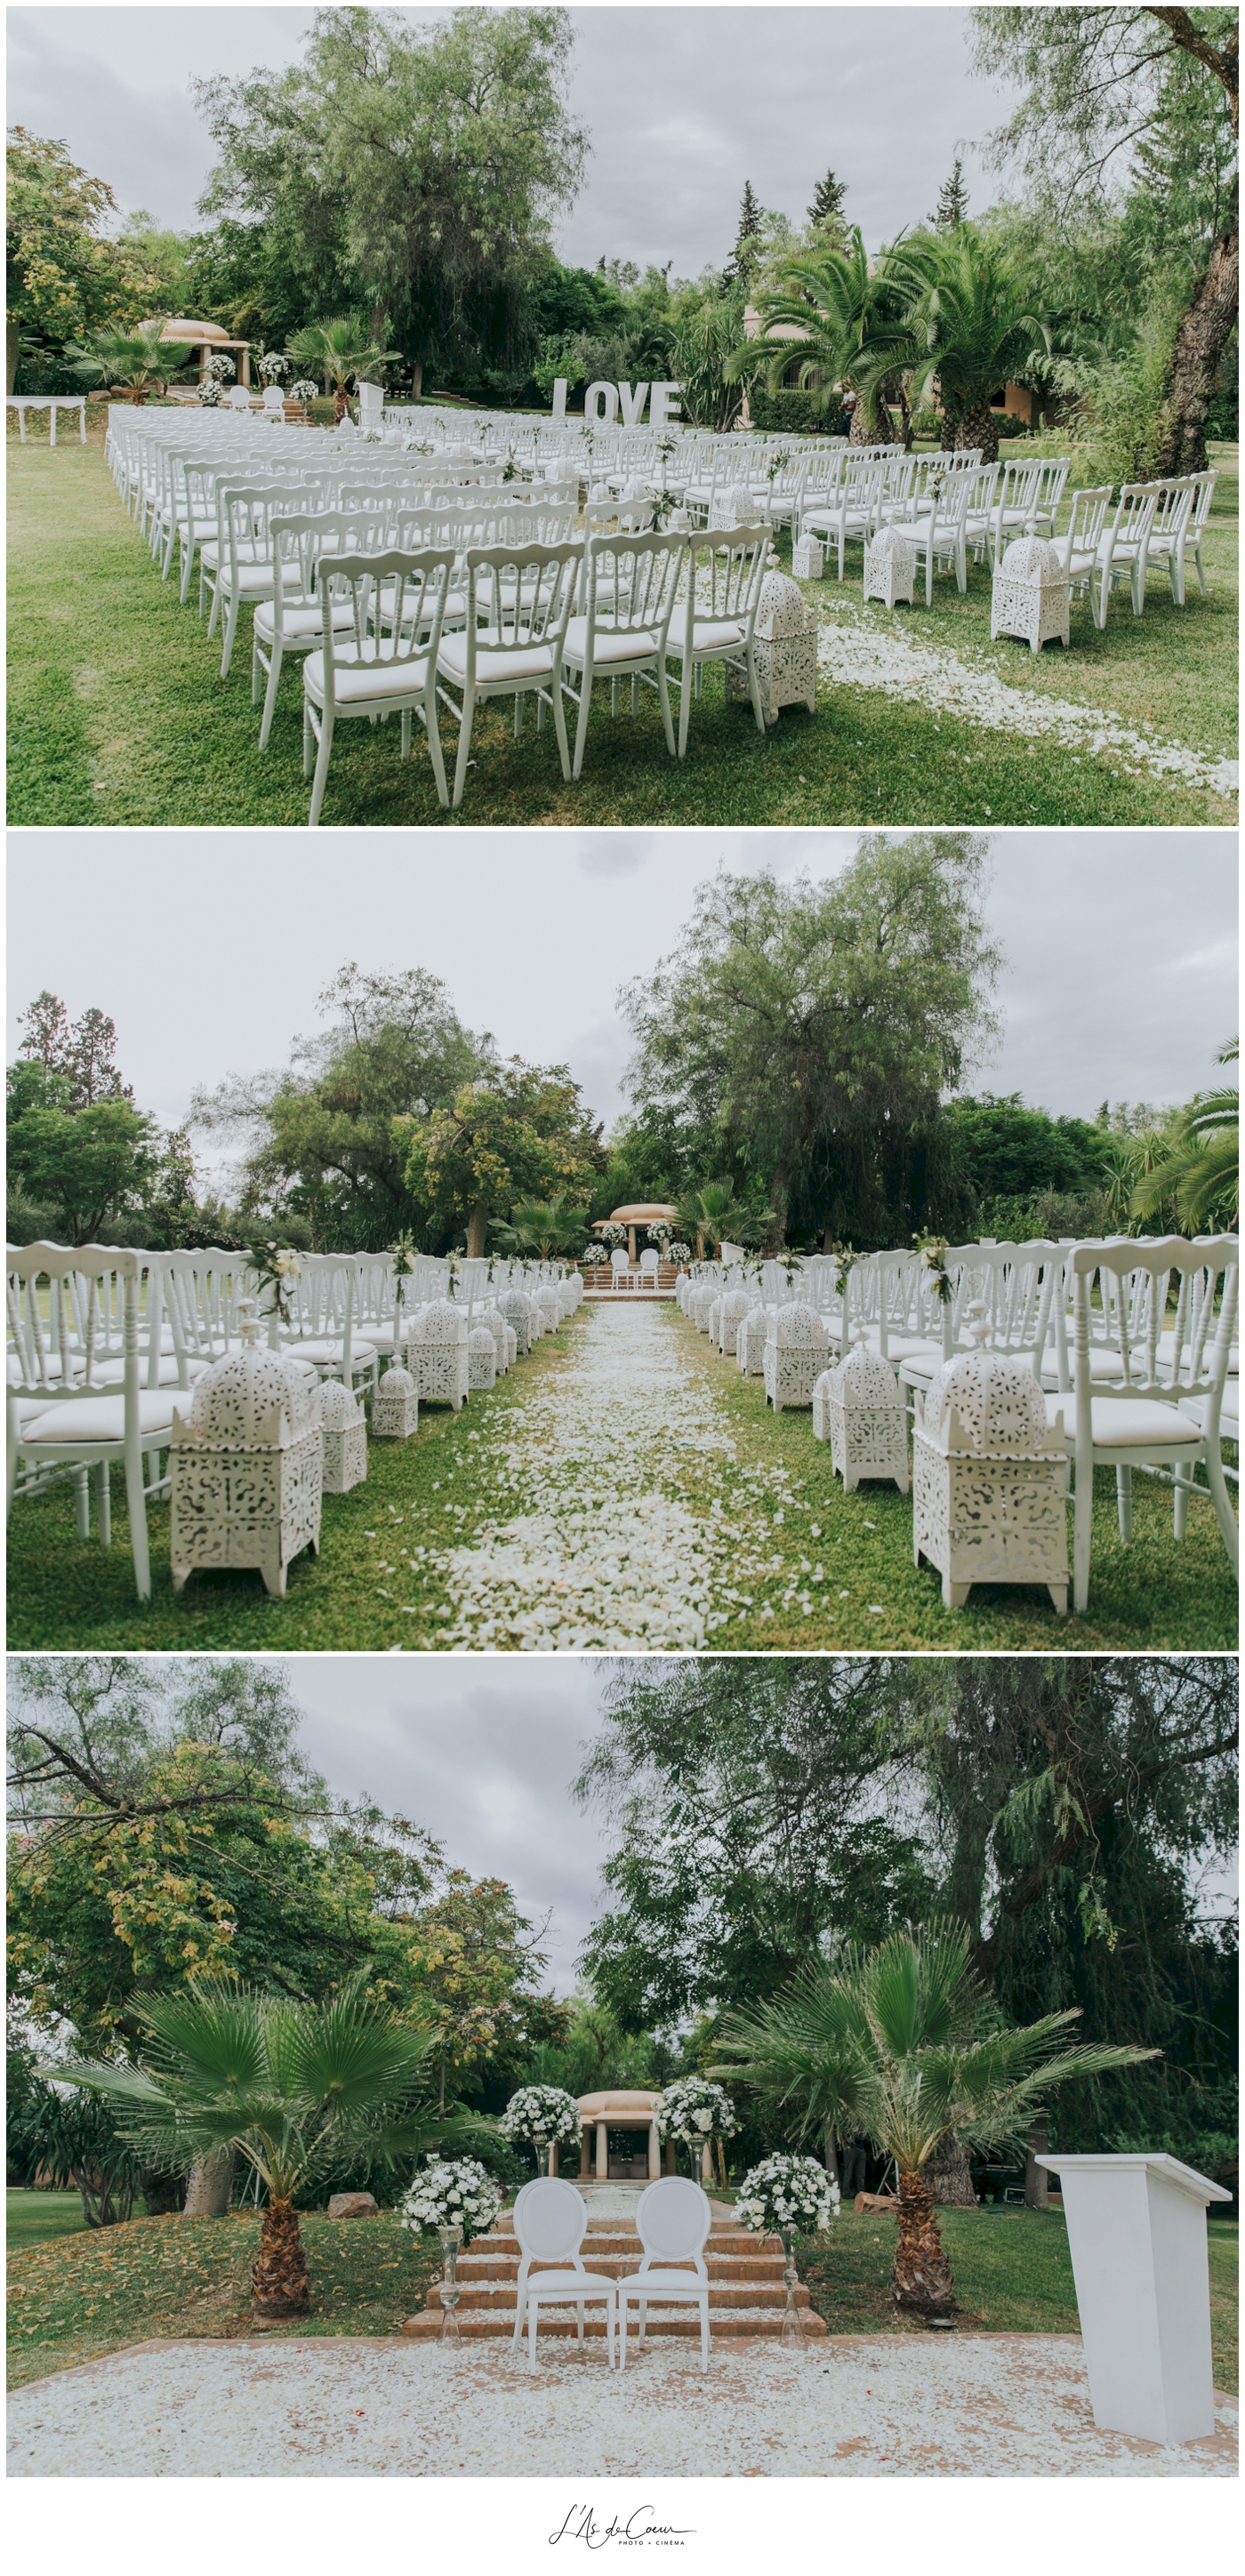 wedding venue palais Rhoul